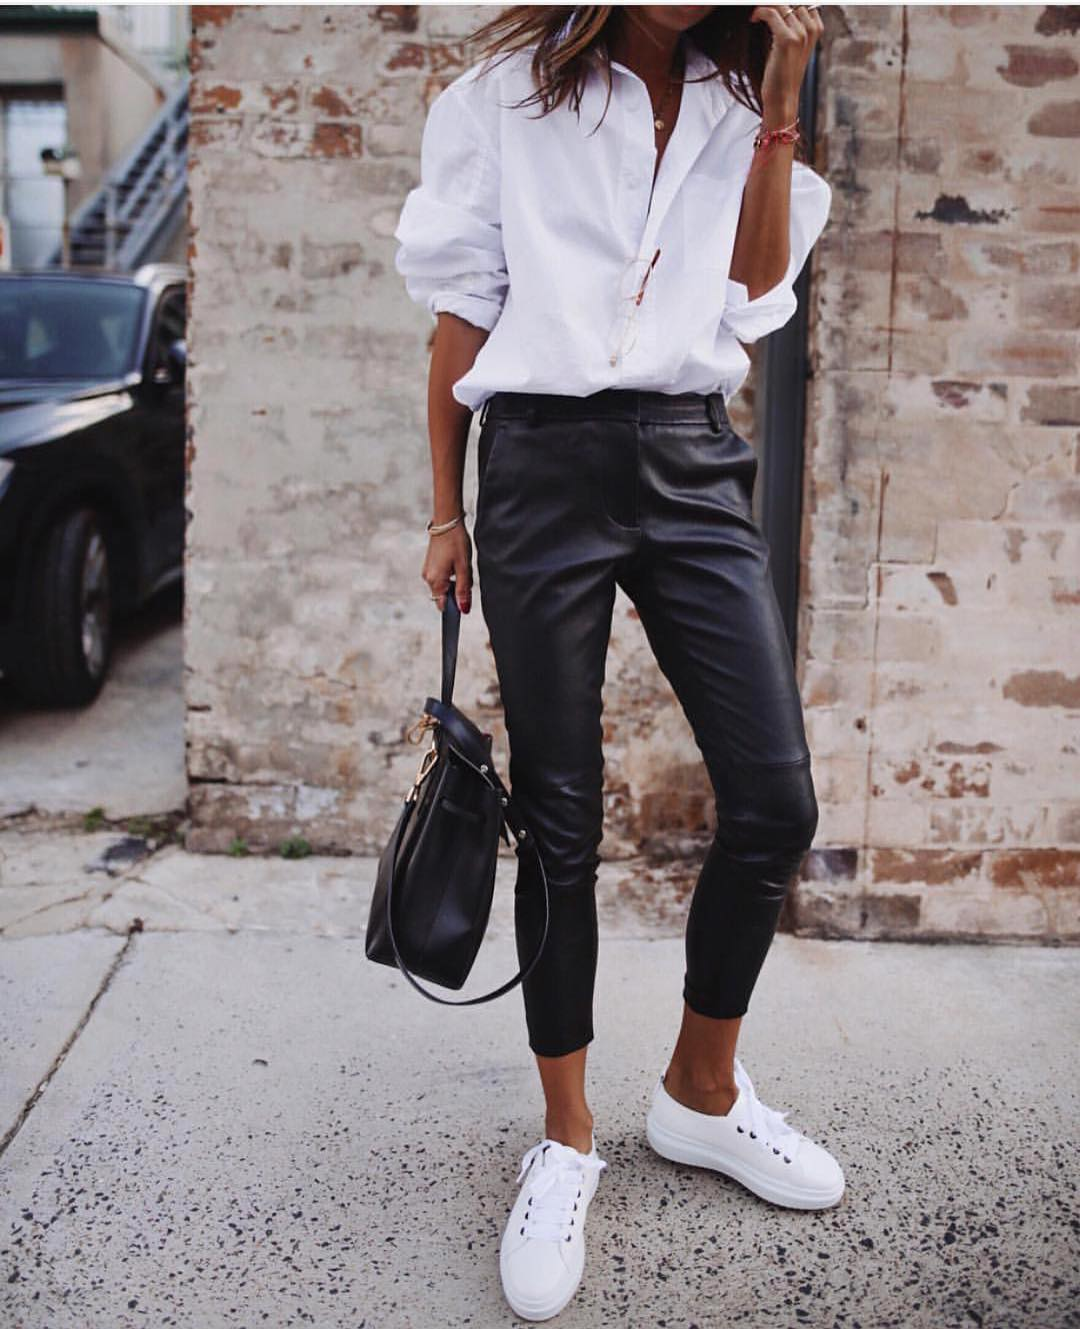 Monochrome Essentials For Spring: White Shirt, Black Leather Pants And White Kicks 2019